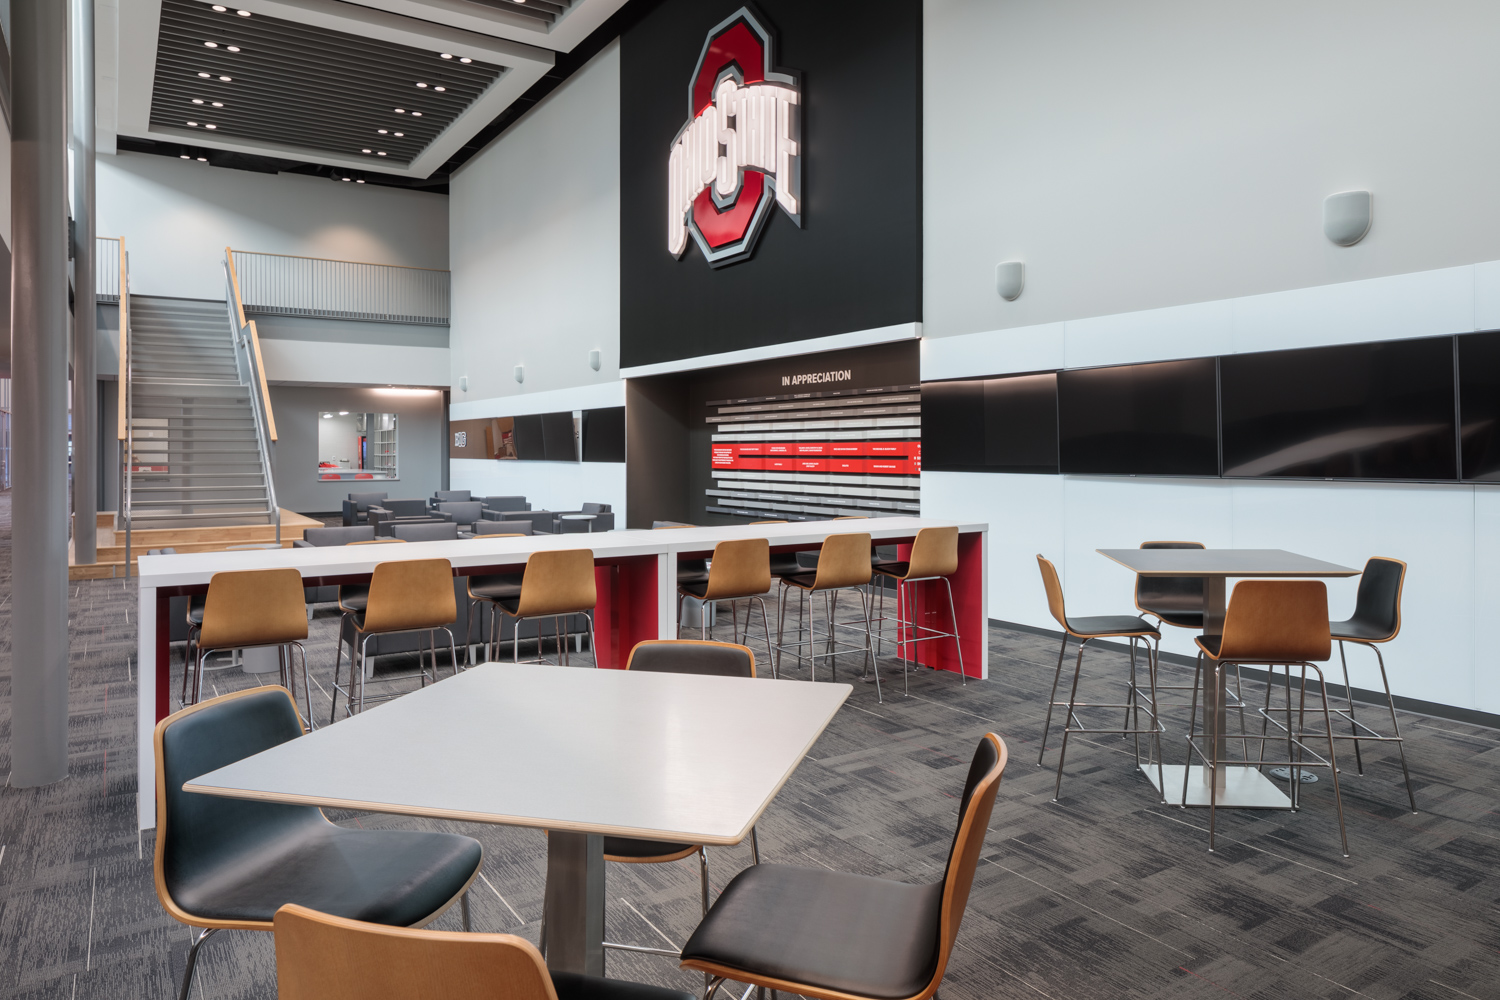 ohio state university interior design program